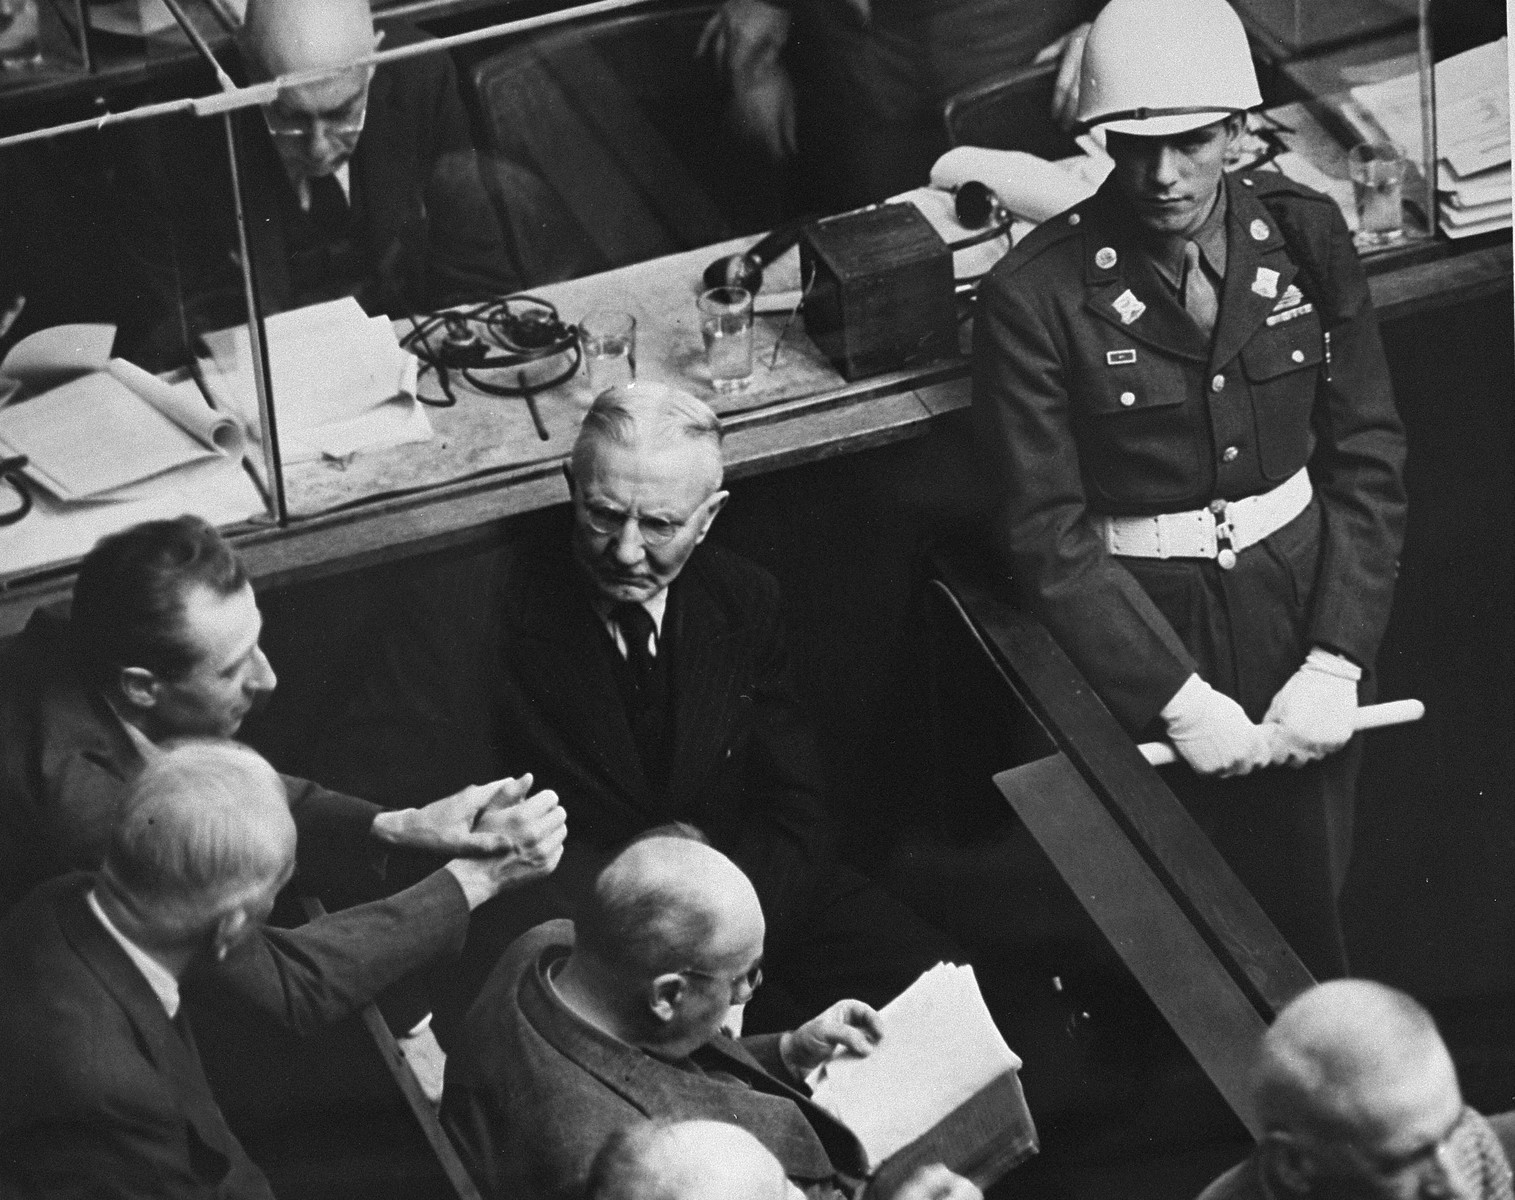 Defendant Hjalmar Schacht, former president of the Reichsbank, talks to his fellow defendants under the eye of an American military police officer at the International Military Tribunal trial of war criminals at Nuremberg.